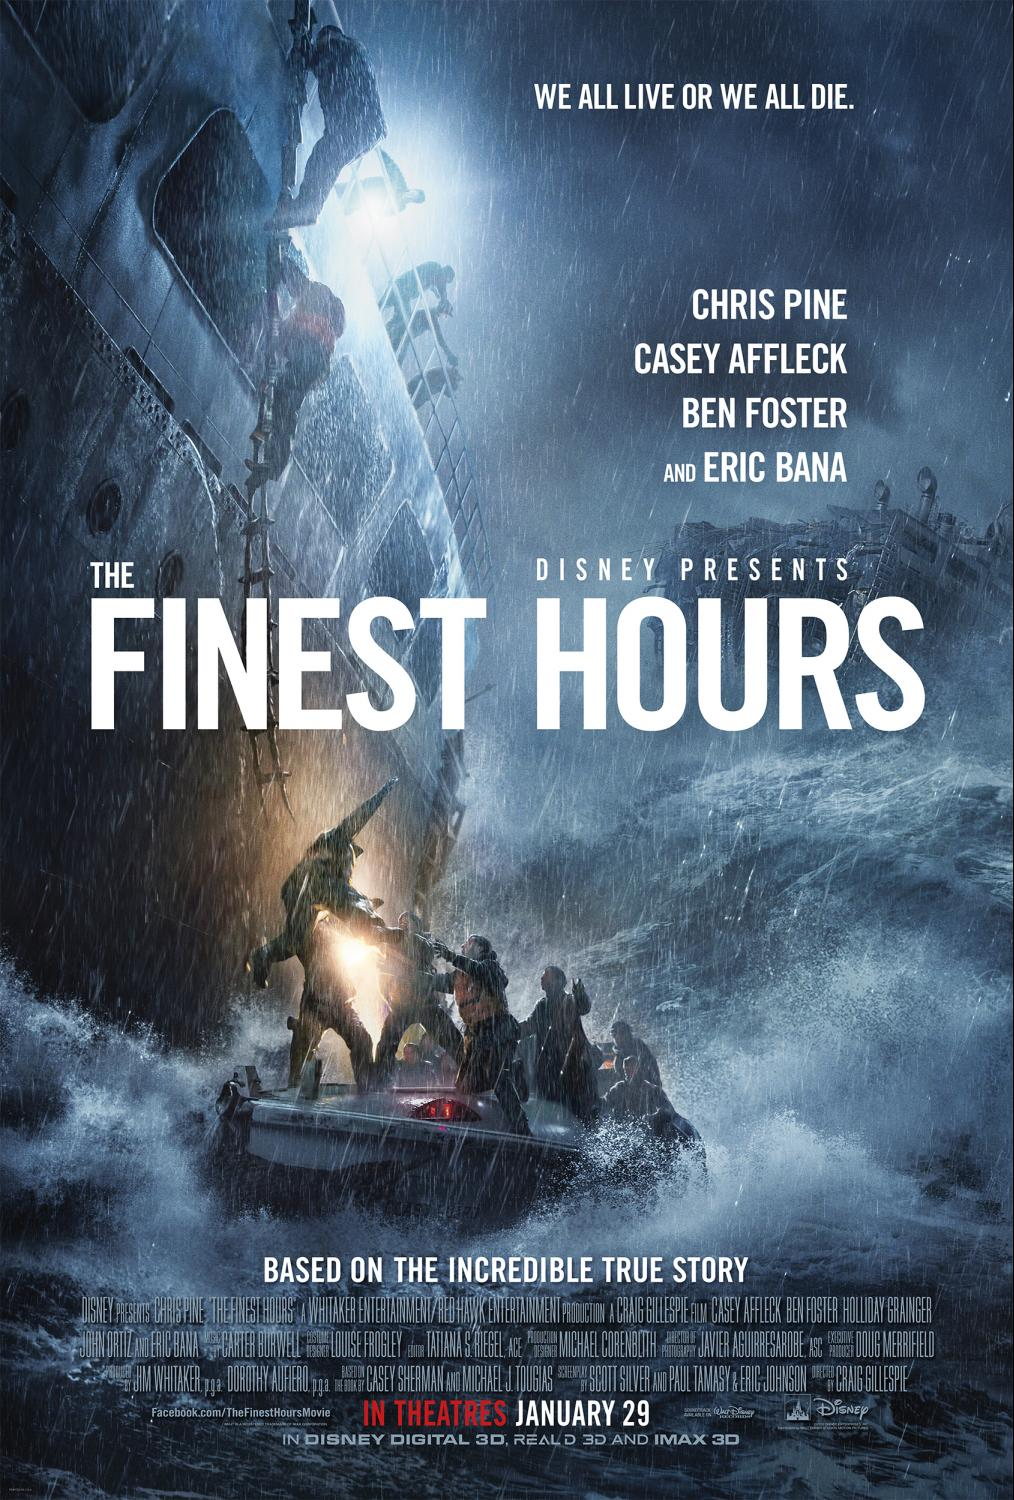 The Finest Hours – Coast Guard 360 Video Experience (Disney Video Release)